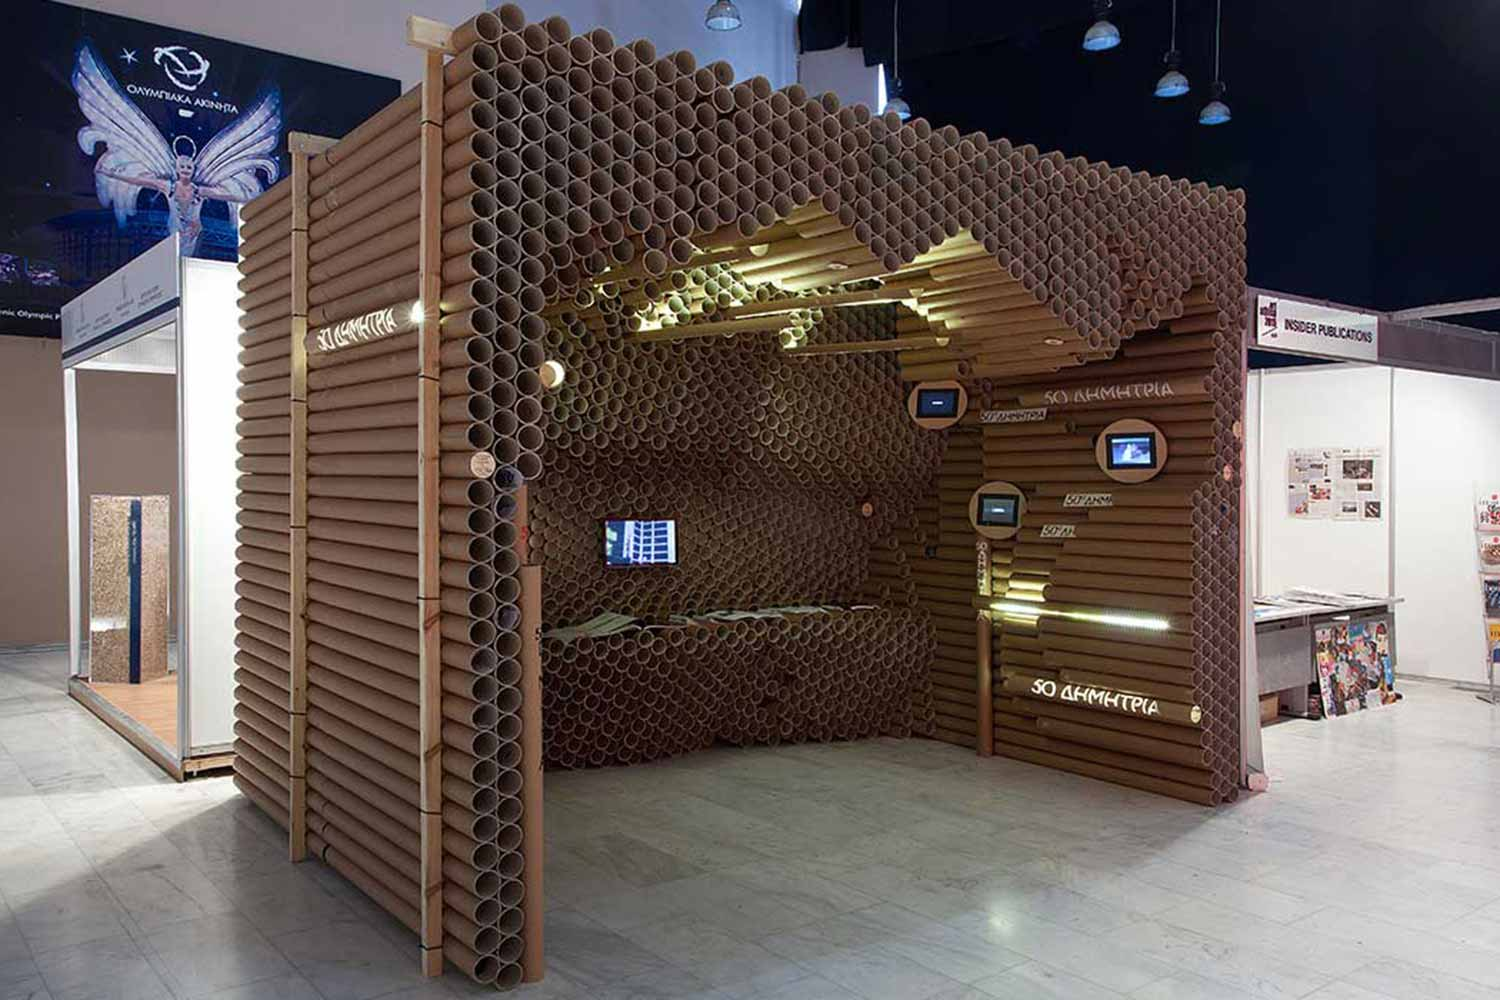 50th Dimitria Exhibition Kiosk - Architecture